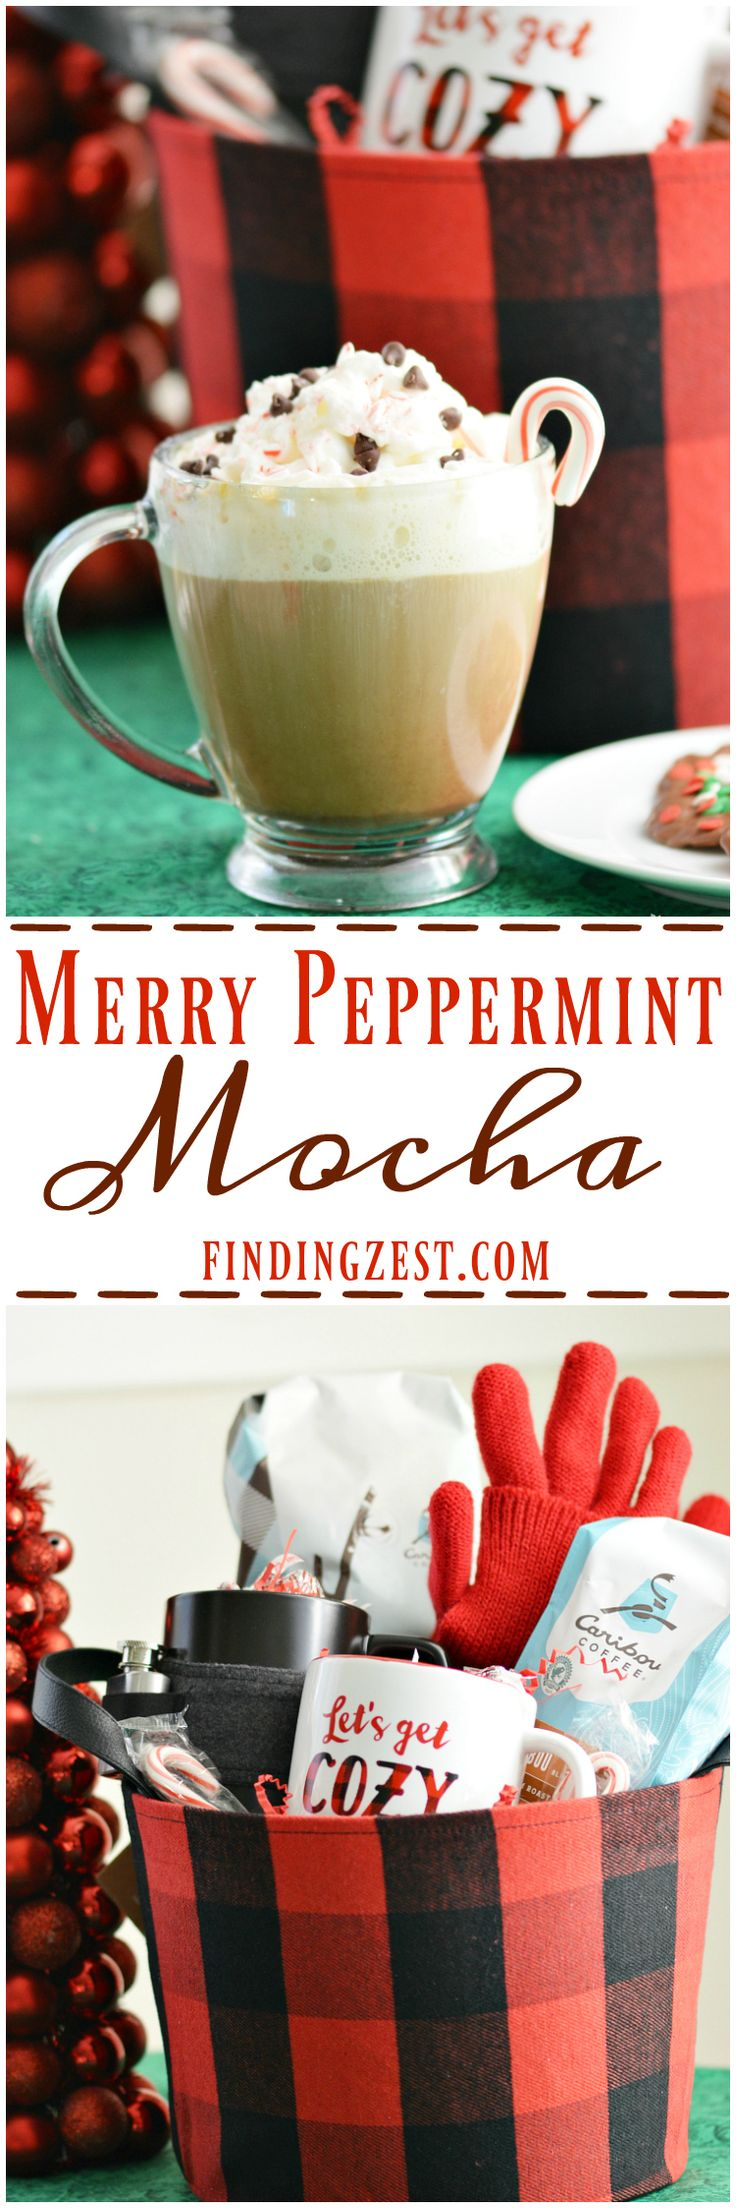 Try this easy Merry Peppermint Mocha coffee drink you can make at home with just a few ingredients and Caribou Coffee.